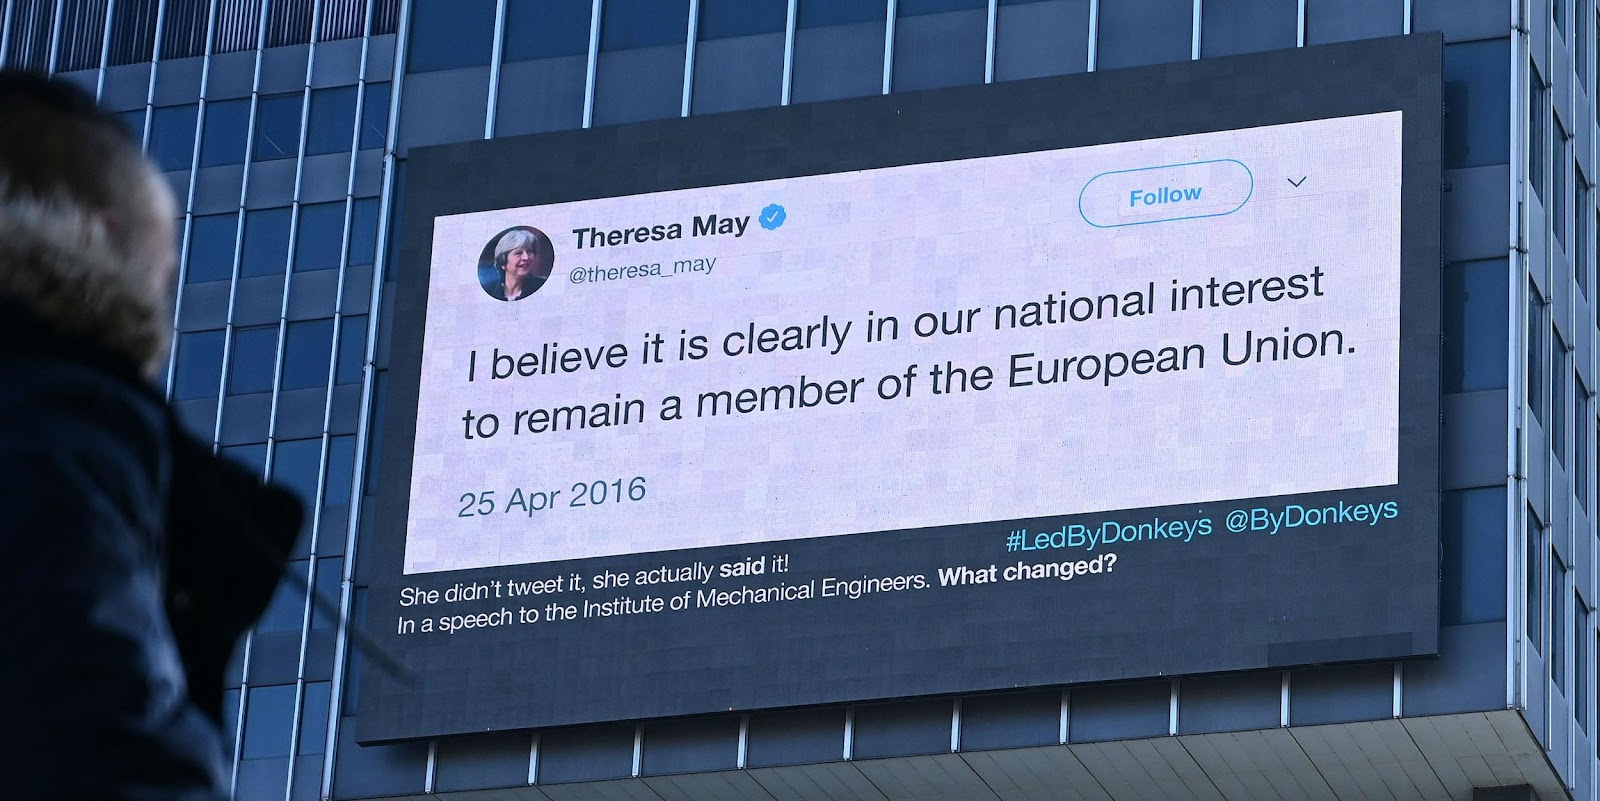 """Billboard by Led By Donkey, displayed as a tweet by Theresa May saying """"I believe it is clearly in our national interest to remain a member of the European Union."""""""